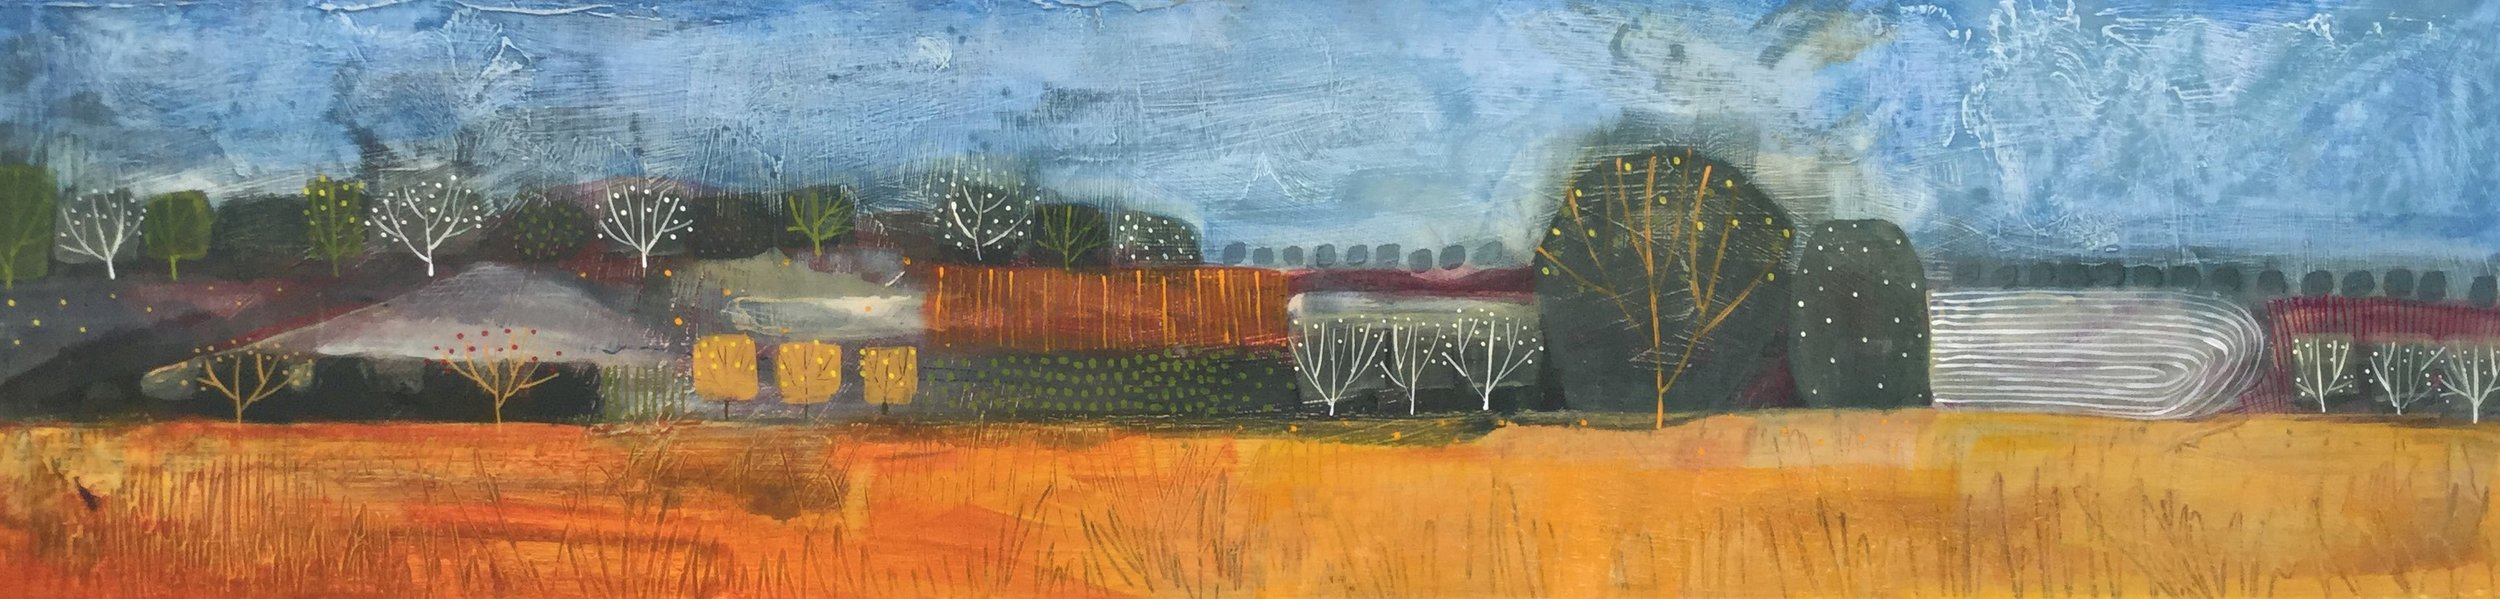 Harvest in the Valley  acrylic on board  39x130cm  £1,700